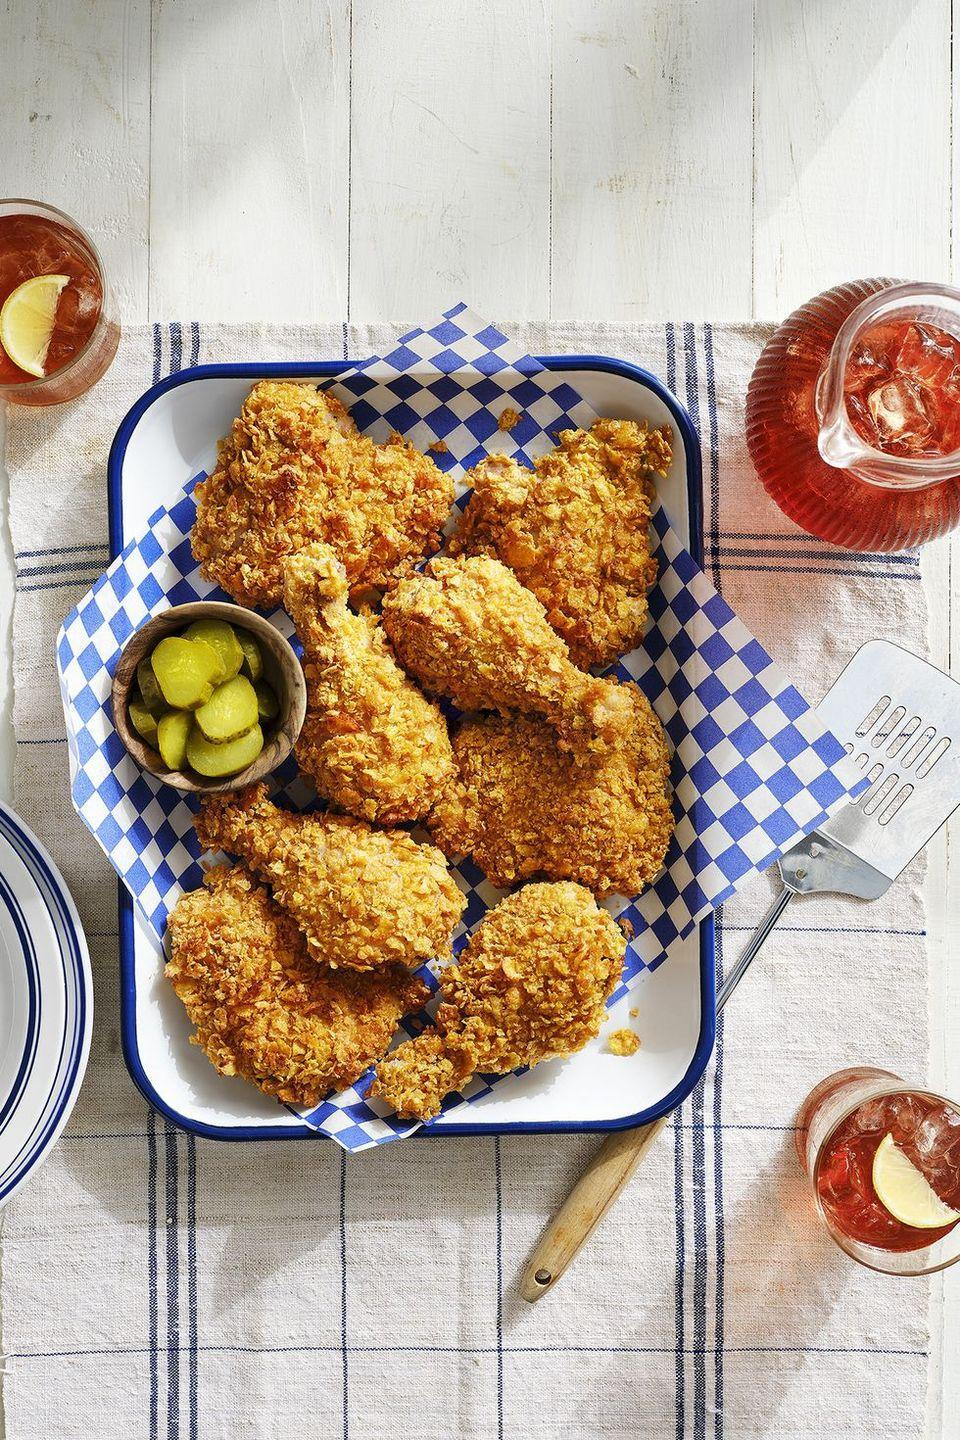 """<p>This crunchy, yummy fried chicken alternative is sure to satisfy, but without nearly the effort (or the calories) that <em>actual</em> fried chicken involves.</p><p><strong><a href=""""https://www.countryliving.com/food-drinks/a30417464/cornflake-crusted-baked-chicken-recipe/"""" rel=""""nofollow noopener"""" target=""""_blank"""" data-ylk=""""slk:Get the recipe"""" class=""""link rapid-noclick-resp"""">Get the recipe</a>.</strong></p><p><a class=""""link rapid-noclick-resp"""" href=""""https://www.amazon.com/Nordic-Ware-Natural-Aluminum-Commercial/dp/B0049C2S32/?tag=syn-yahoo-20&ascsubtag=%5Bartid%7C10050.g.4772%5Bsrc%7Cyahoo-us"""" rel=""""nofollow noopener"""" target=""""_blank"""" data-ylk=""""slk:SHOP BAKING SHEETS"""">SHOP BAKING SHEETS</a></p>"""